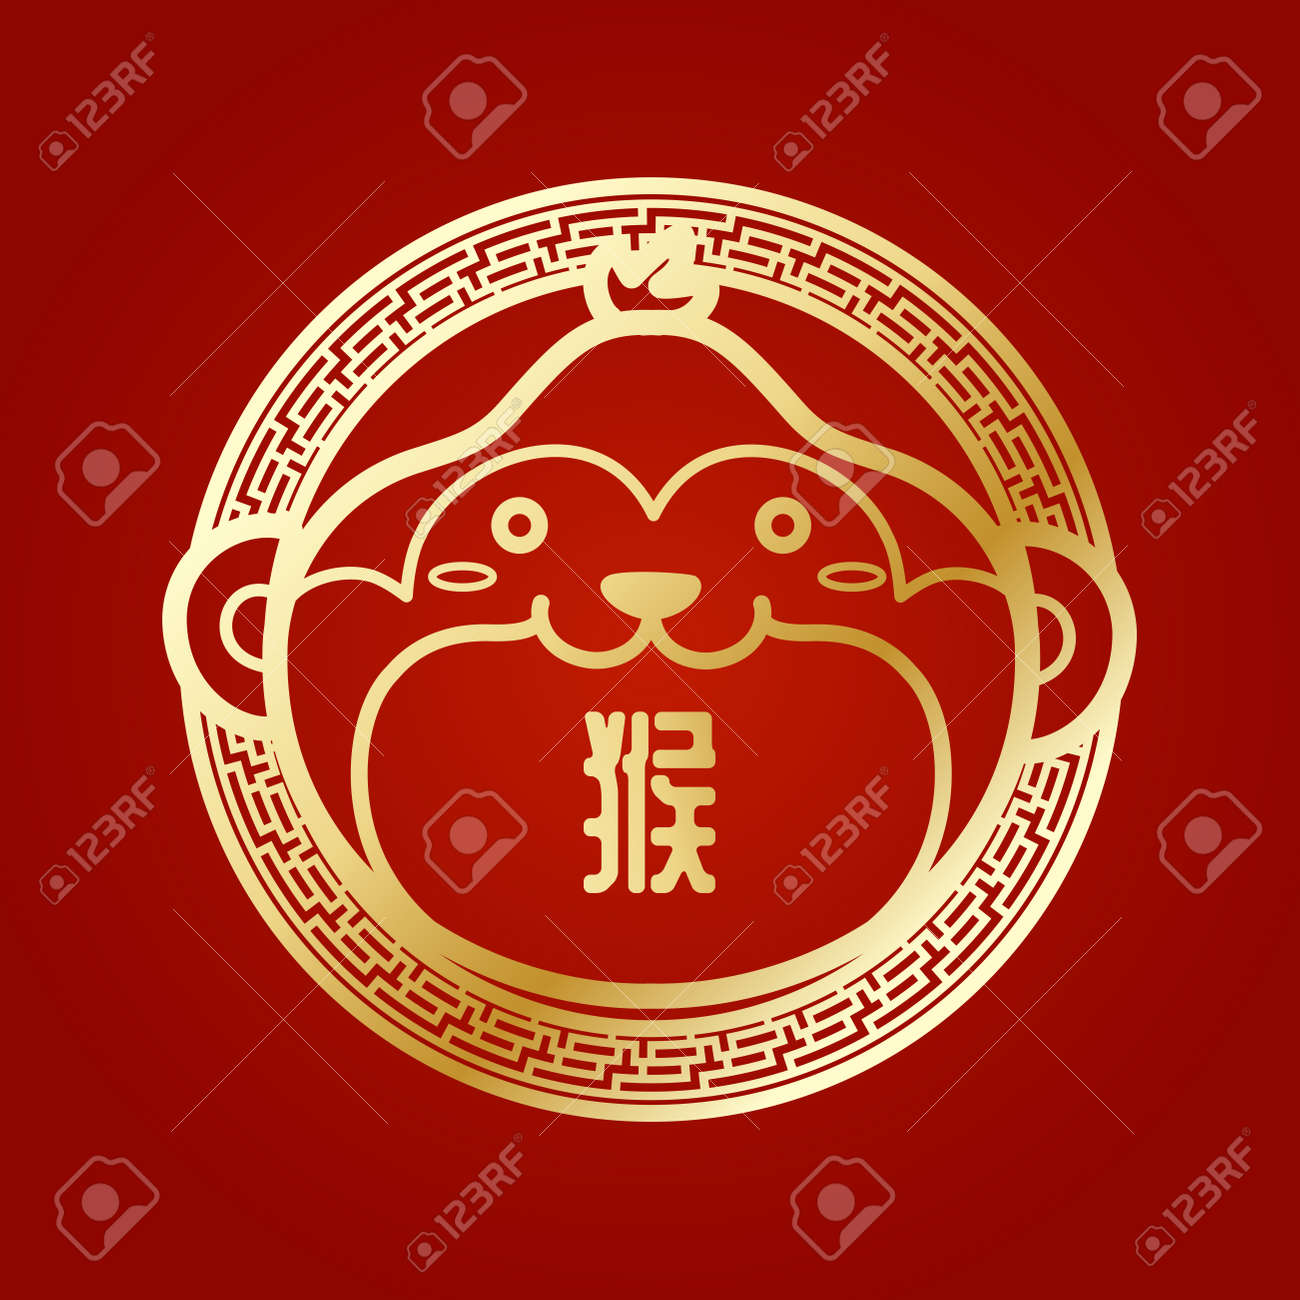 A cute golden monkey or a symbol based on the Chinese zodiac or the Year of the Monkey. - 166106186